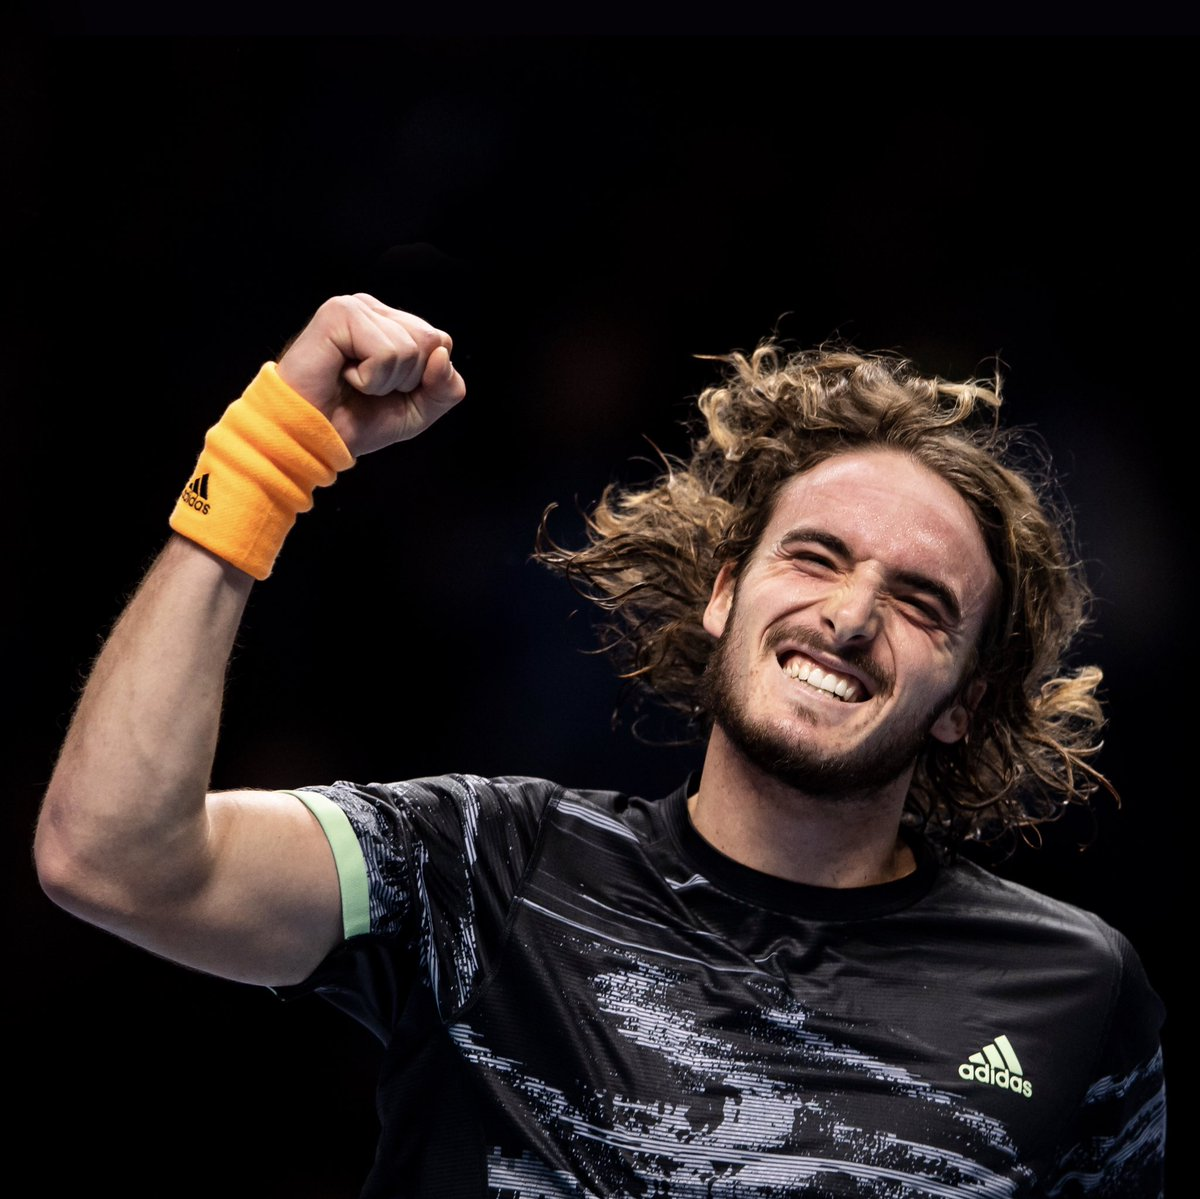 There's nothing more powerful than believing in yourself.  At age 6, @StefTsitsipas started taking tennis lessons. By 17, he became world junior number one. Now, at just 21 years old, he is living out his dream winning the biggest title of his career. #HereToCreate